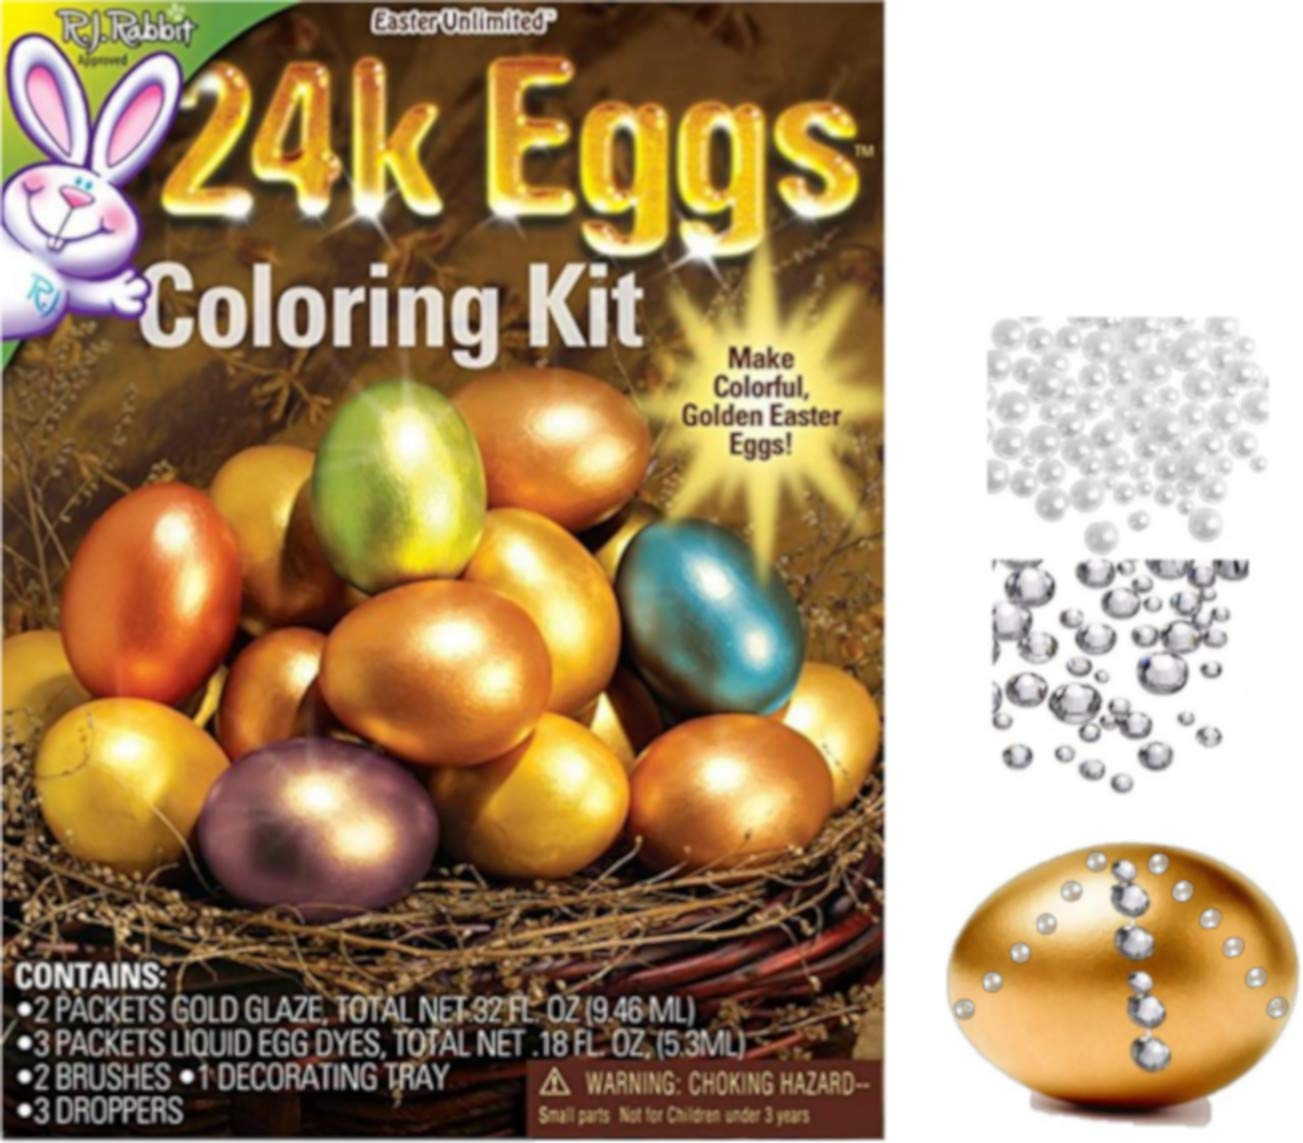 Golden Easter Egg Coloring Kit and Diamond and Pearl Rhinestones Stickers to Decorate GBBD